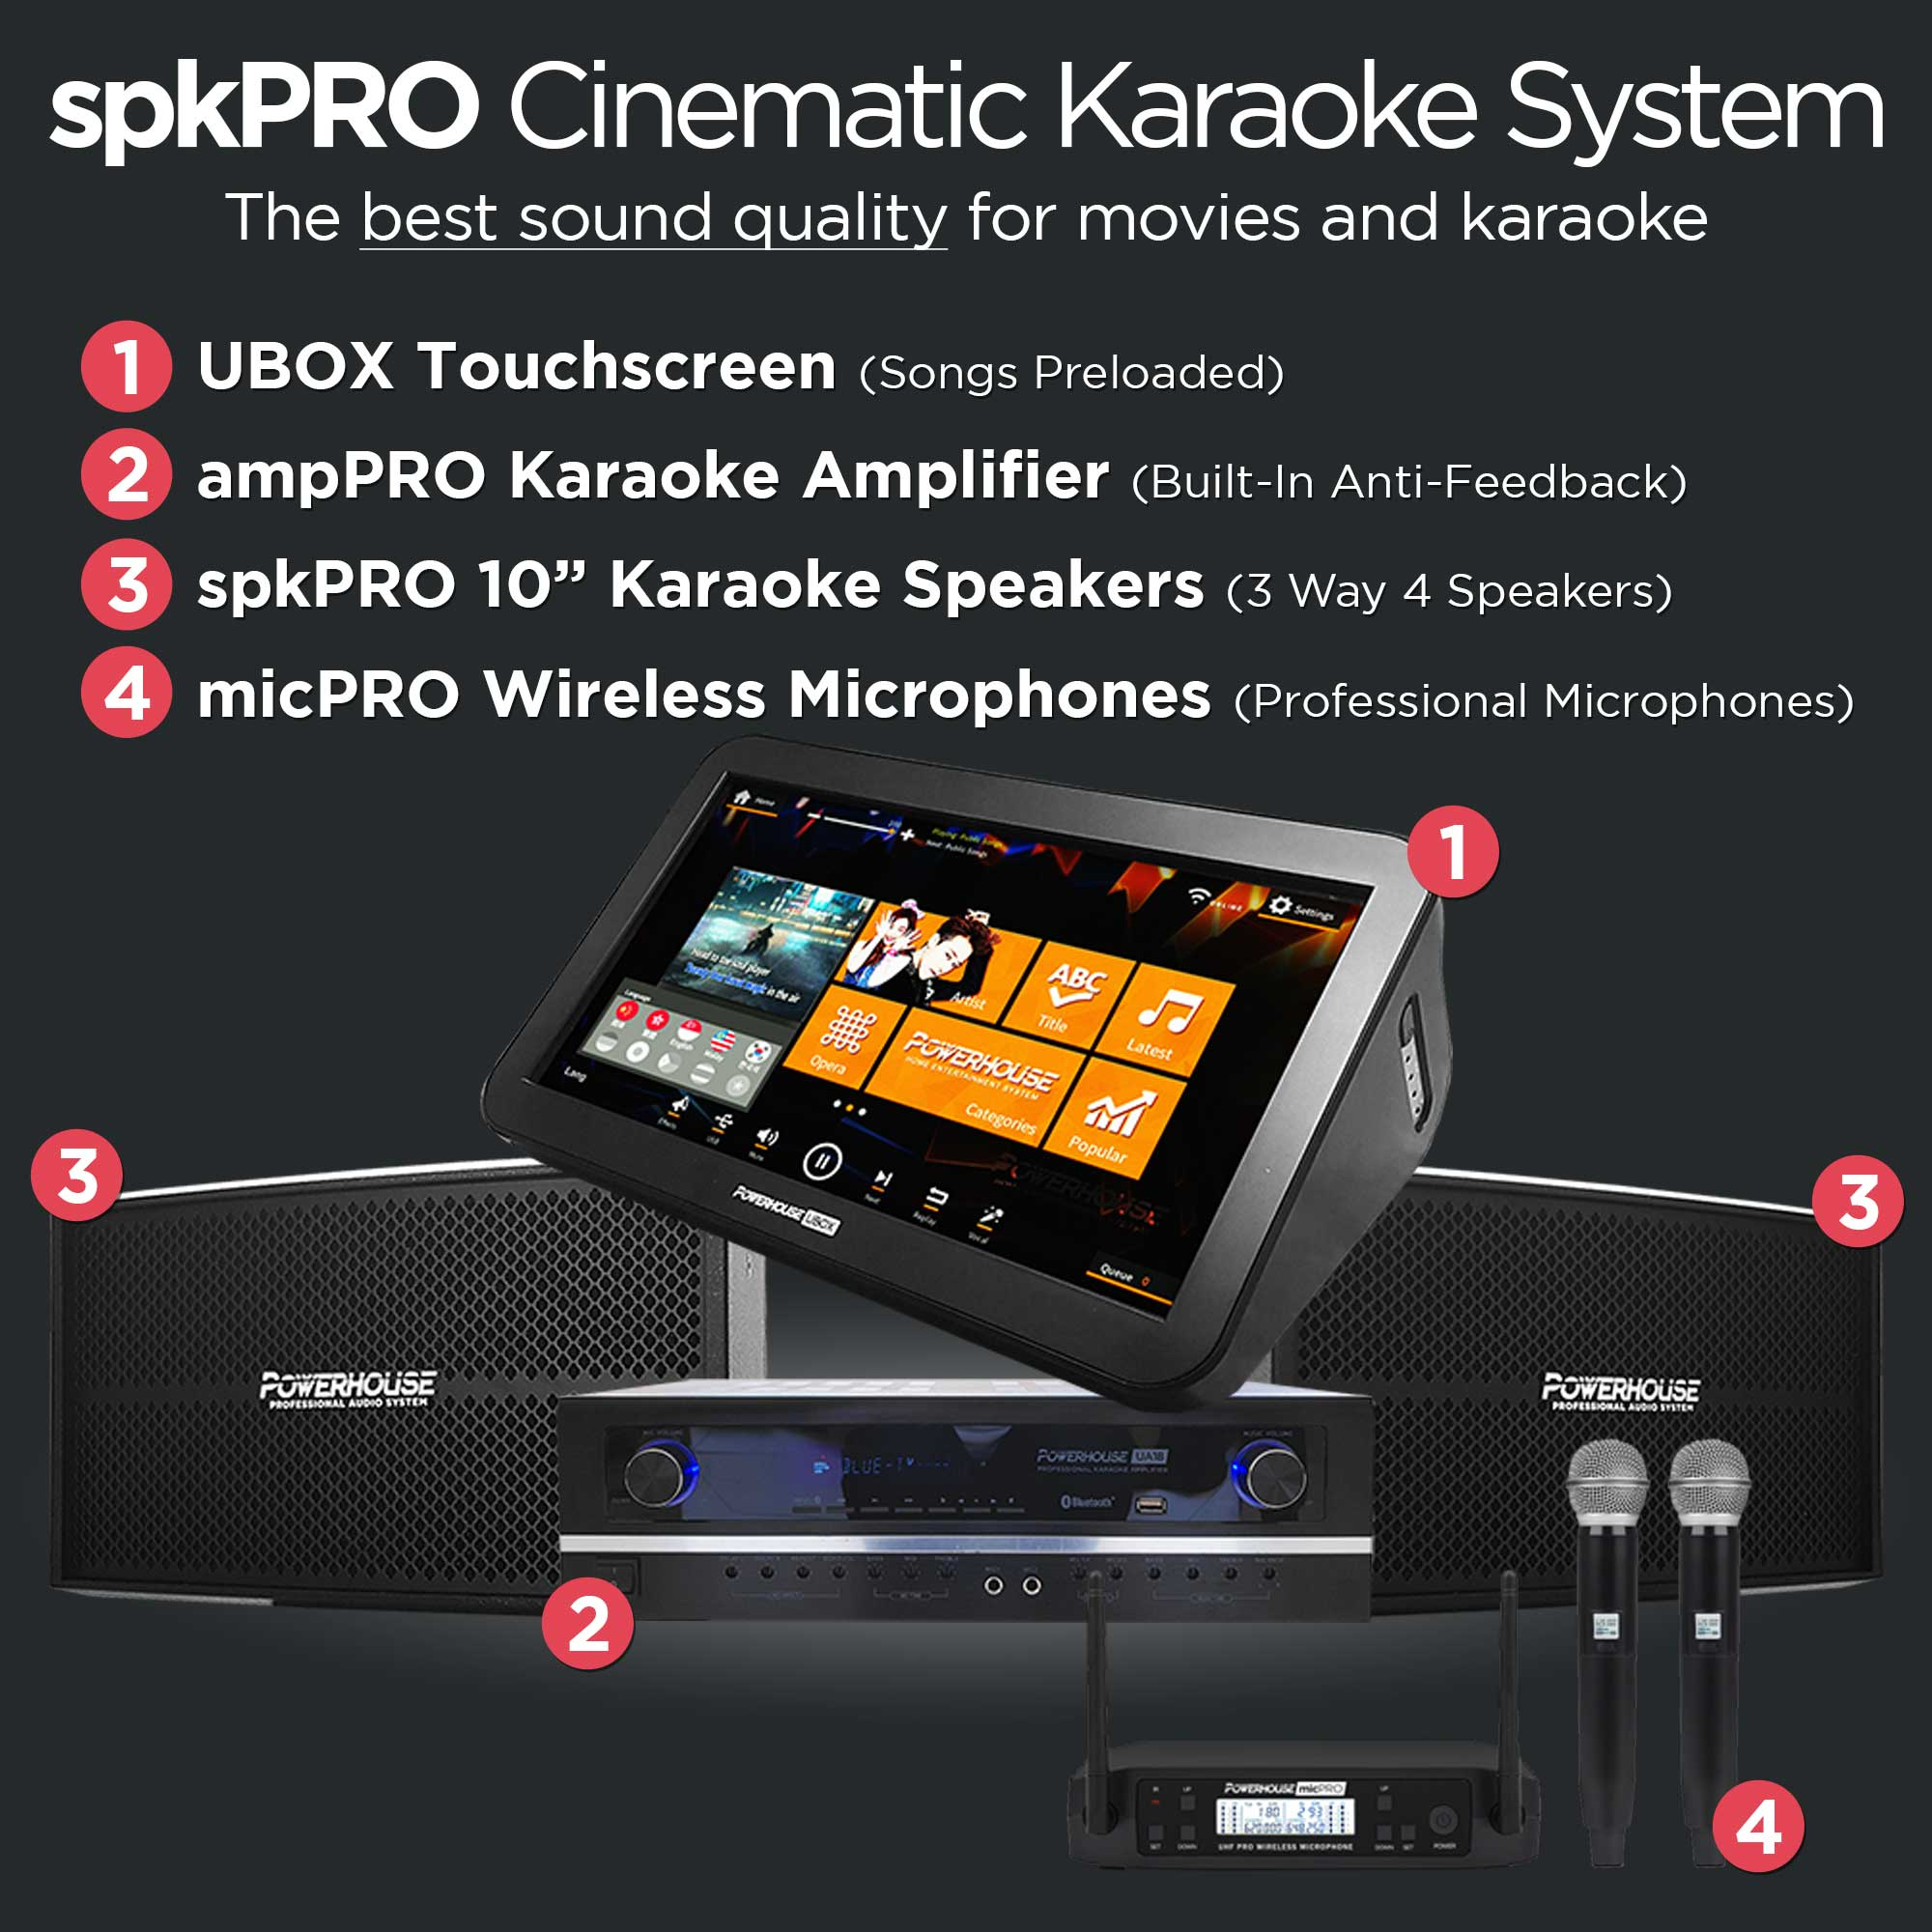 Powerhouse spkPRO Cinematic Karaoke System